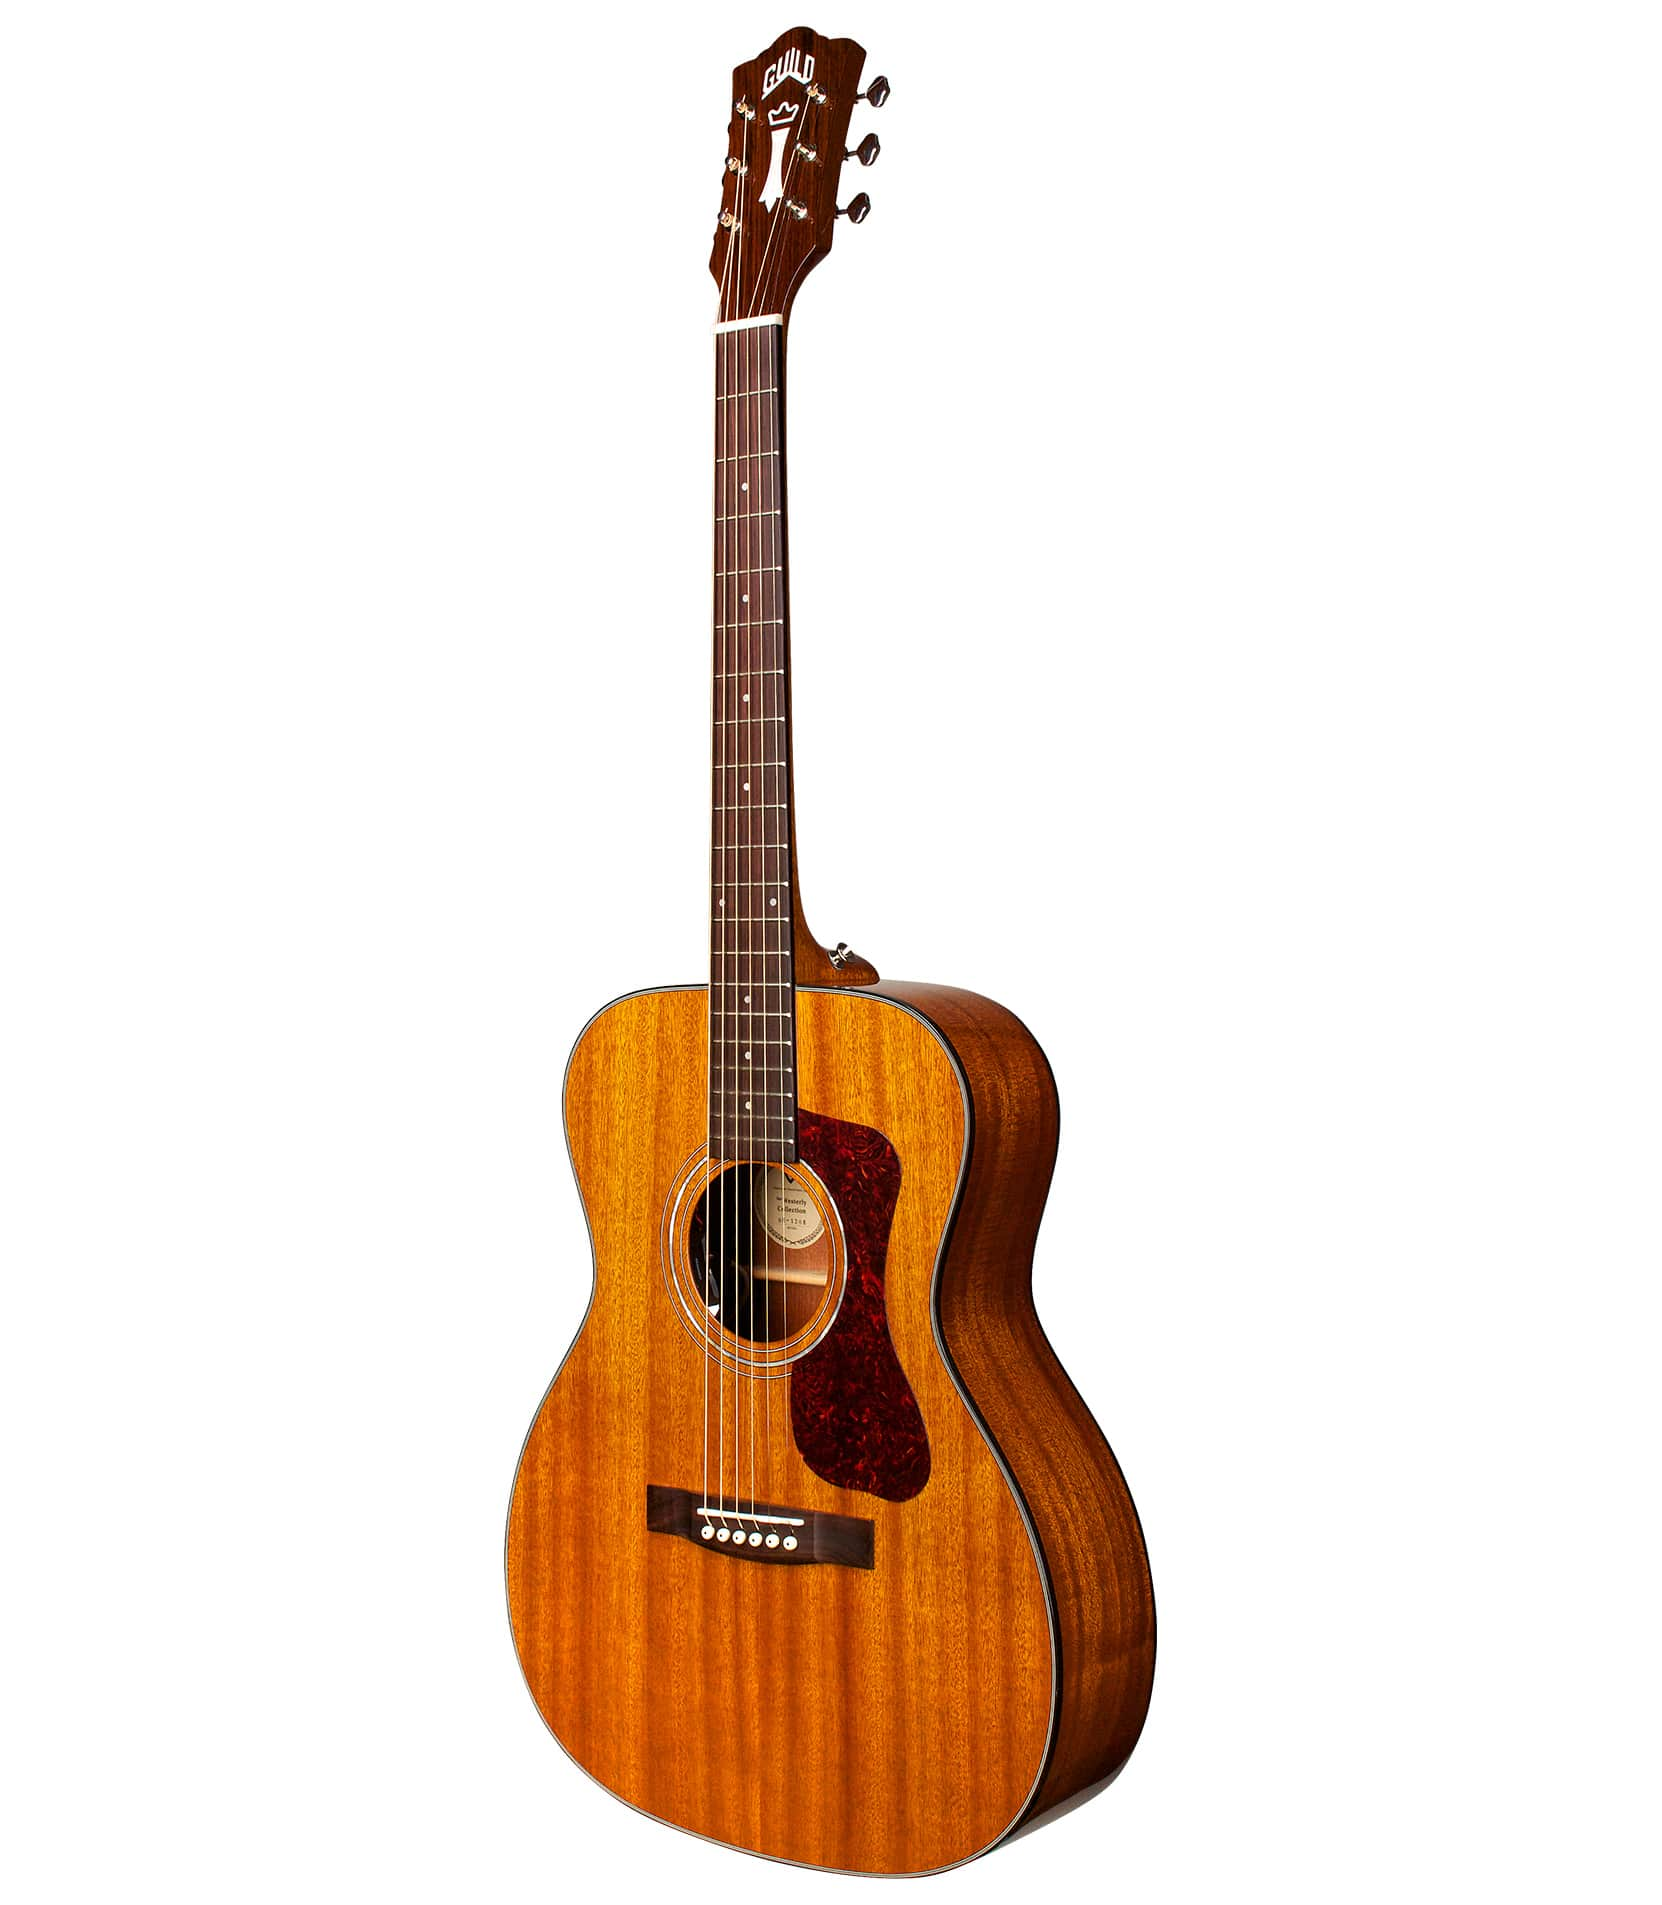 Melody House Musical Instruments Store - OM120 Orchestra Acoustic Guitar Natural Finish